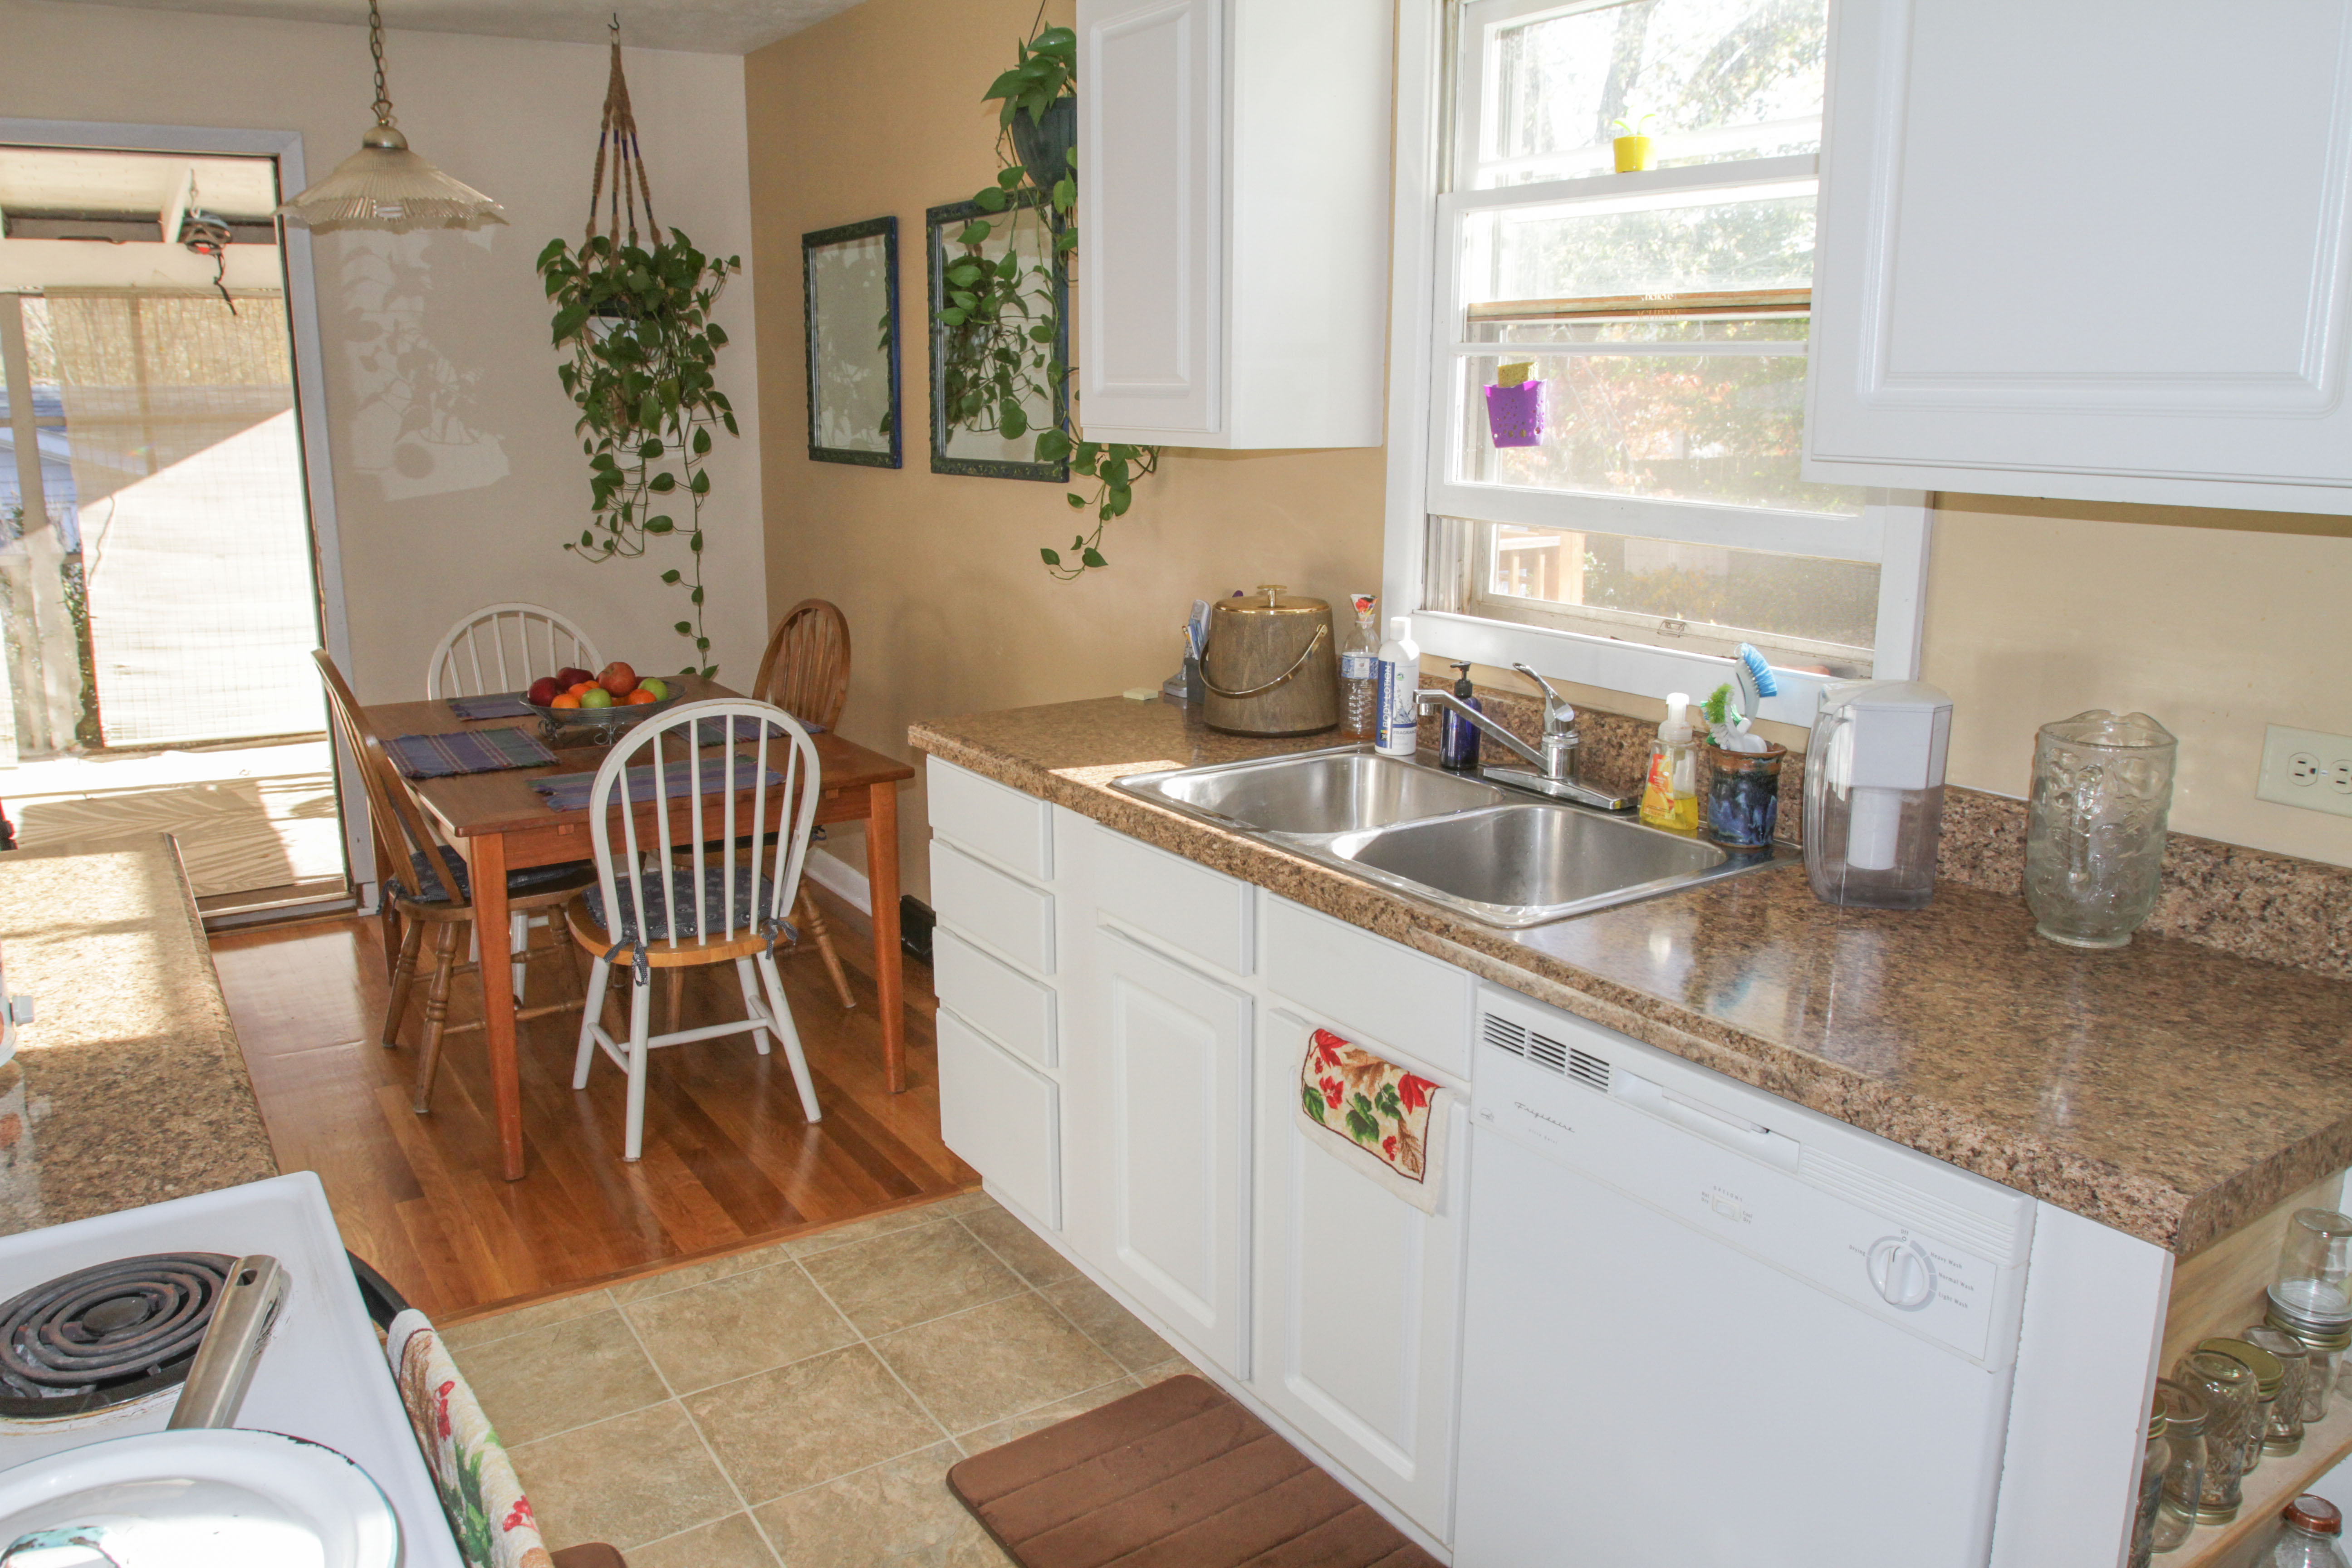 All rooms have shared access to the kitchen, dining room and living room.